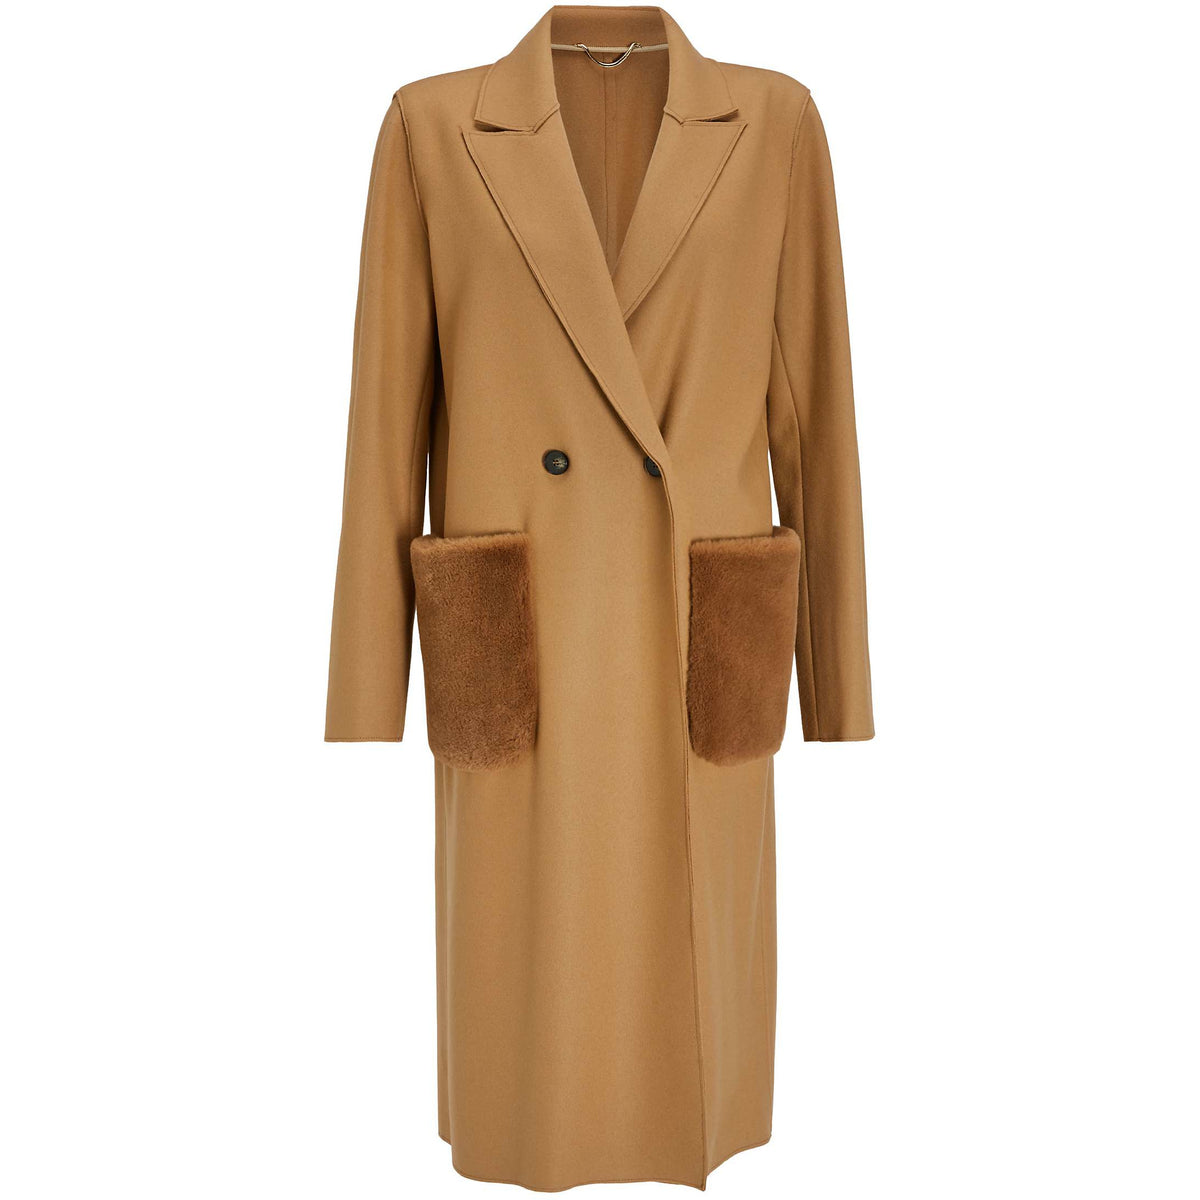 VIGNOLA FAUX FUR POCKET LONG COAT CAMEL